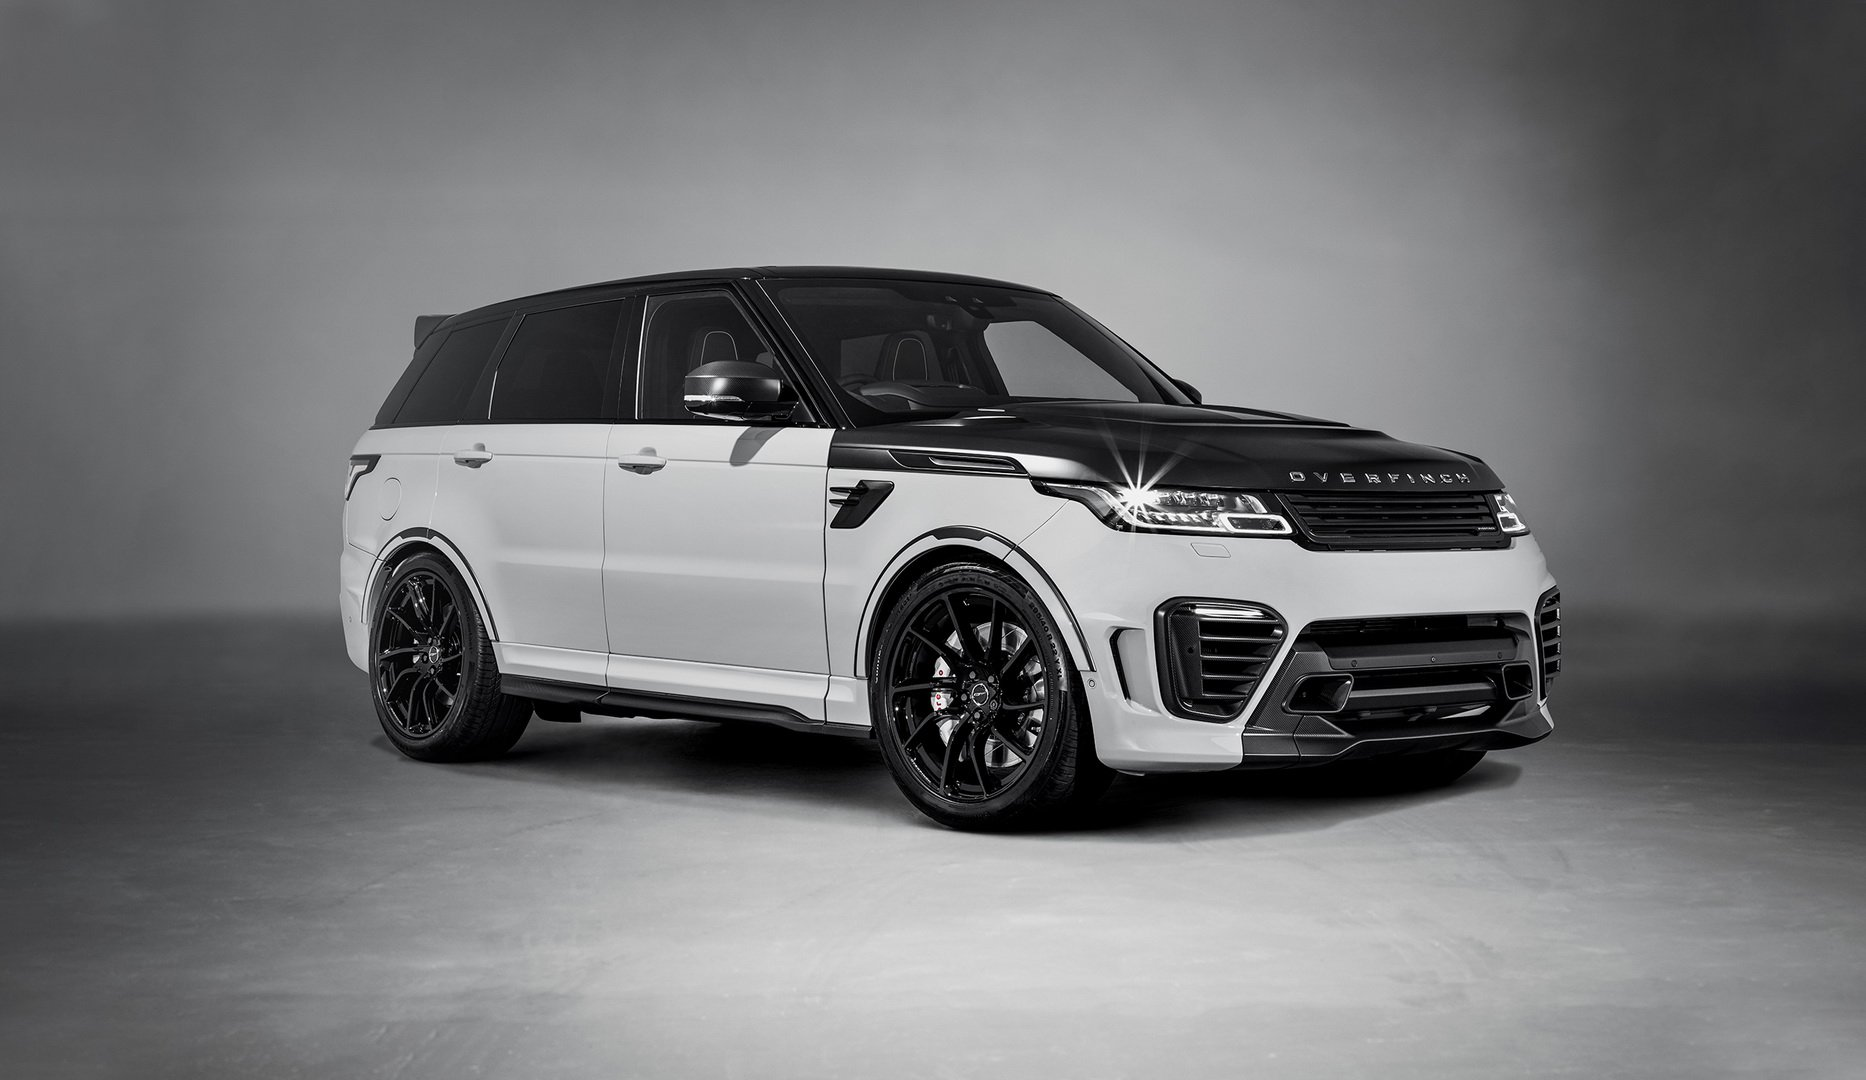 Range Rover Svr For Sale >> Overfinch Range Rover SuperSport SVR Is A Limited Edition ...